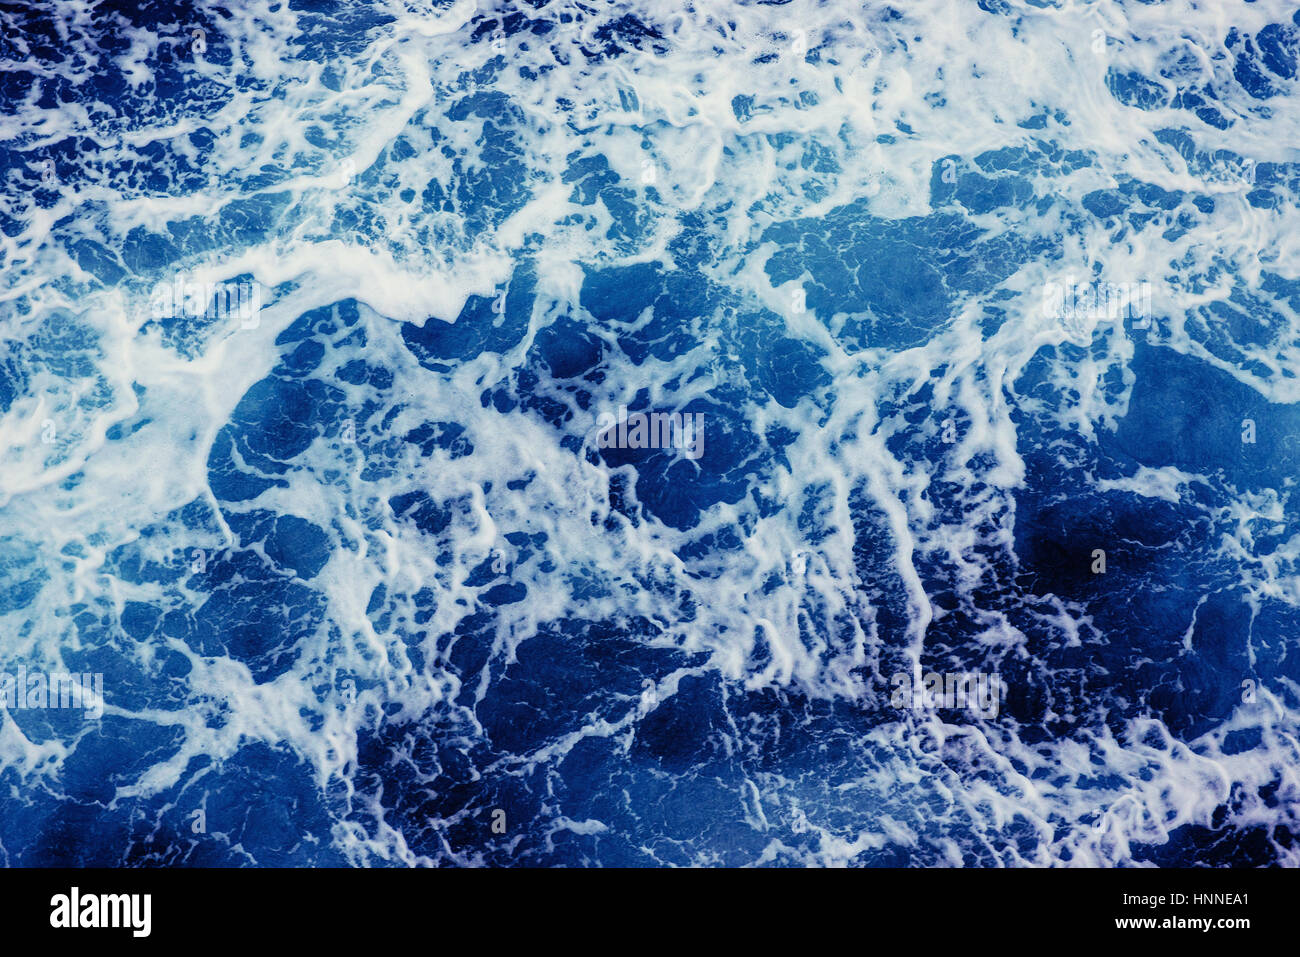 Background blue waves of the sea. - Stock Image